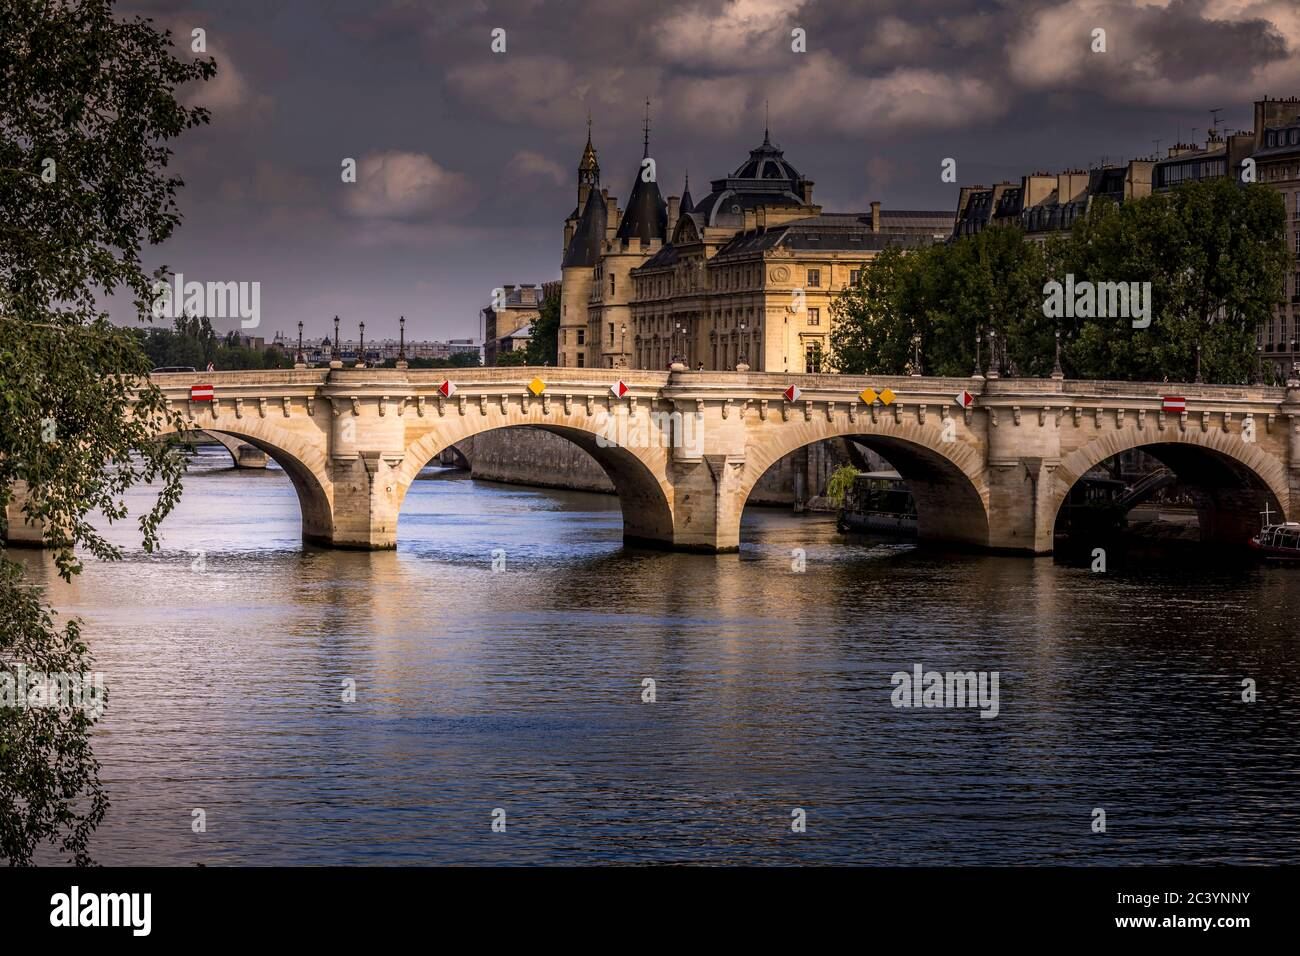 Paris, France - June 9, 2020: Nice view of Pont Neuf bridge and Conciergerie in background on a stormy end of the day in Paris Stock Photo